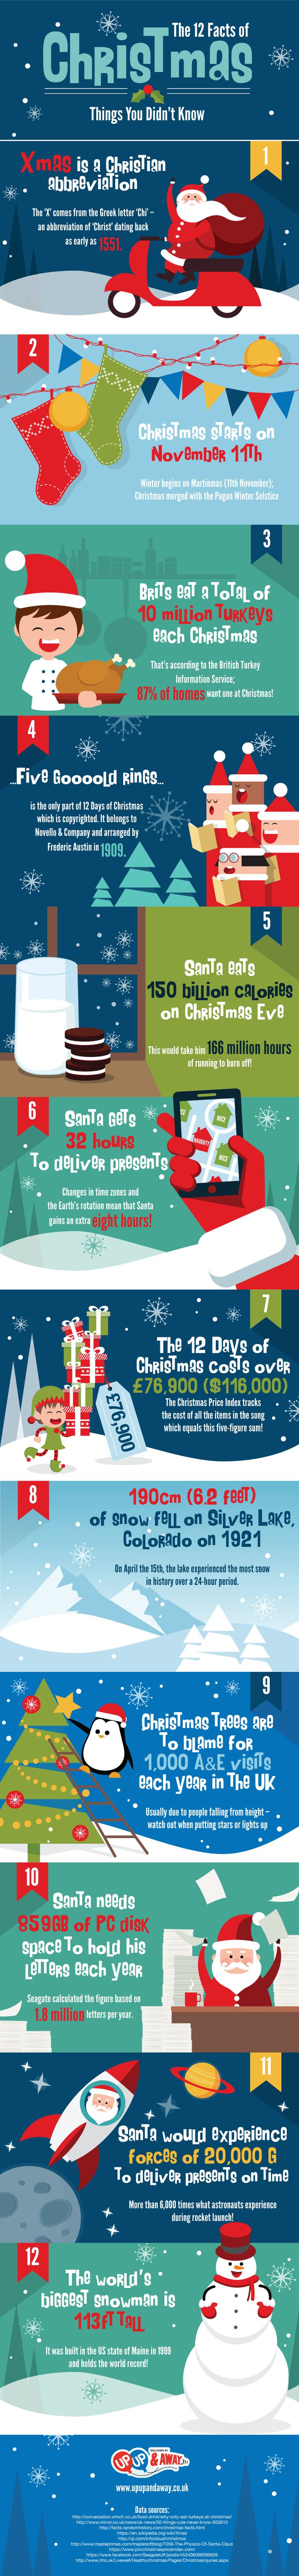 12 Facts You Didn't Know About Christmas - dillydrops